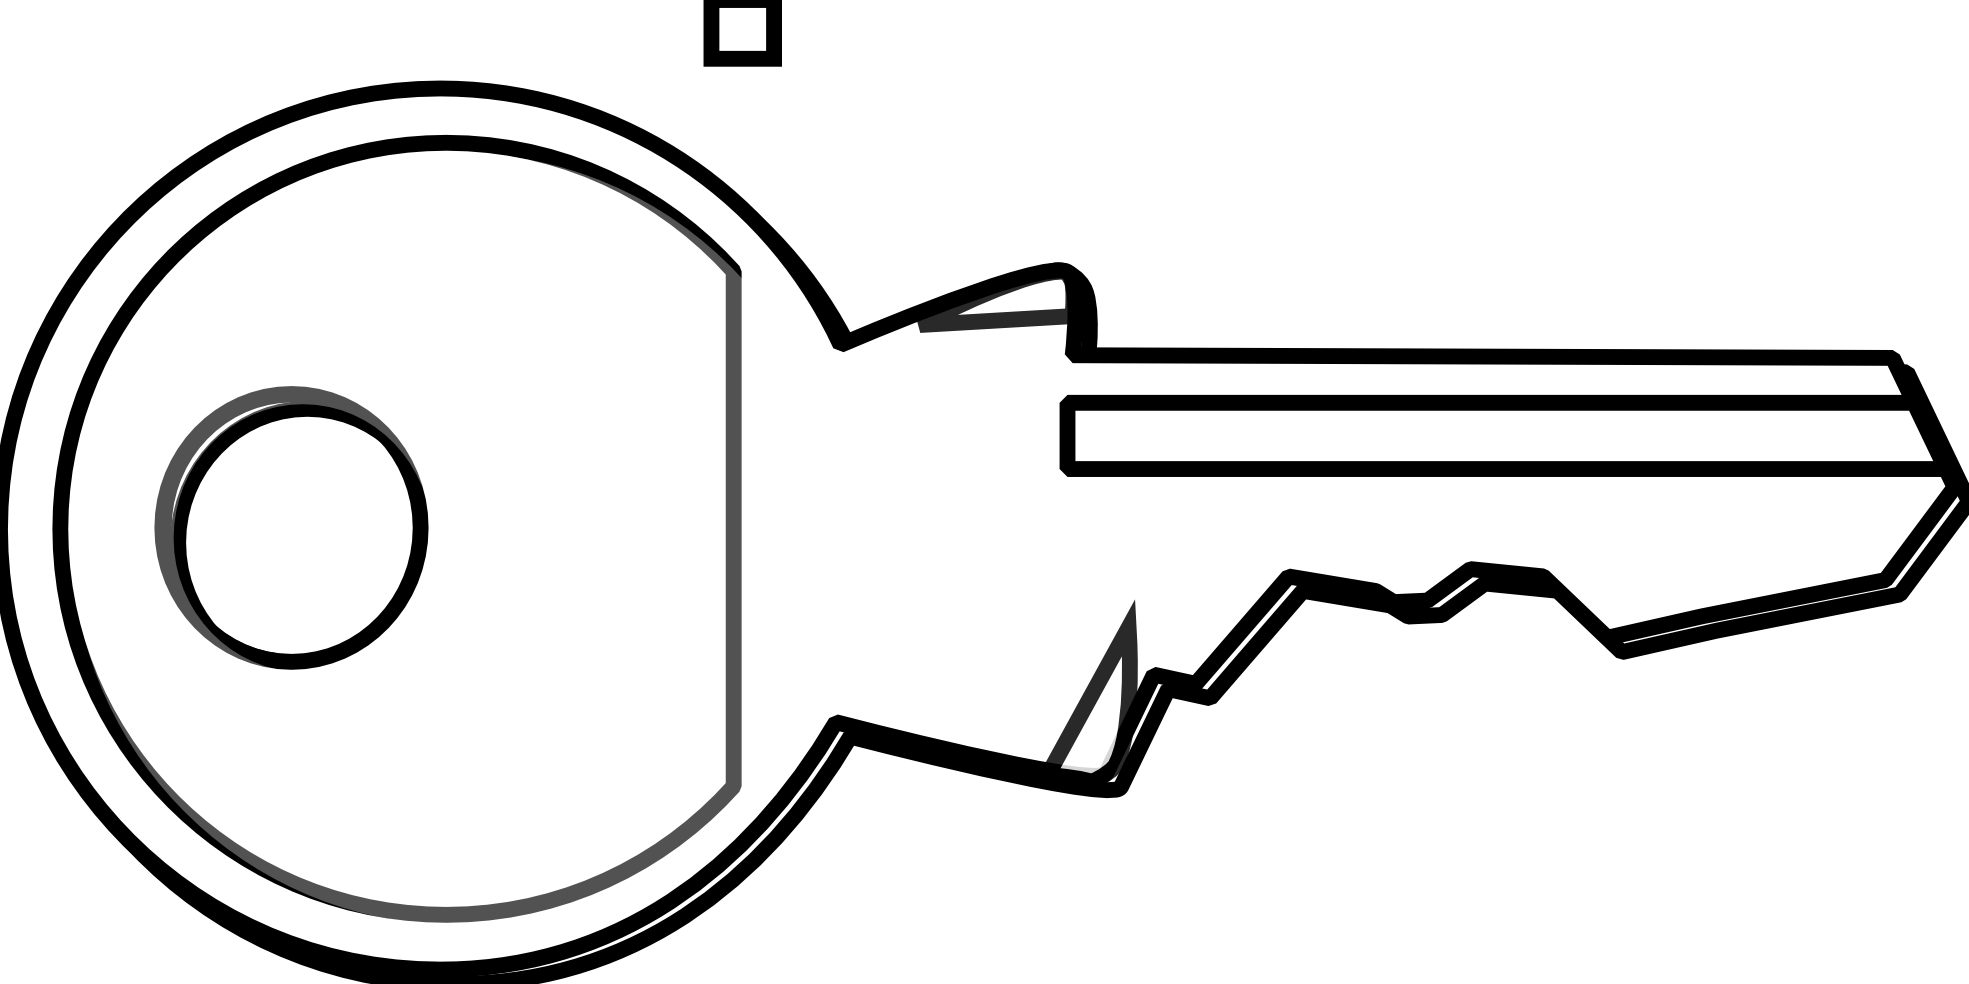 Key black and white key clip art black and white free clipart.